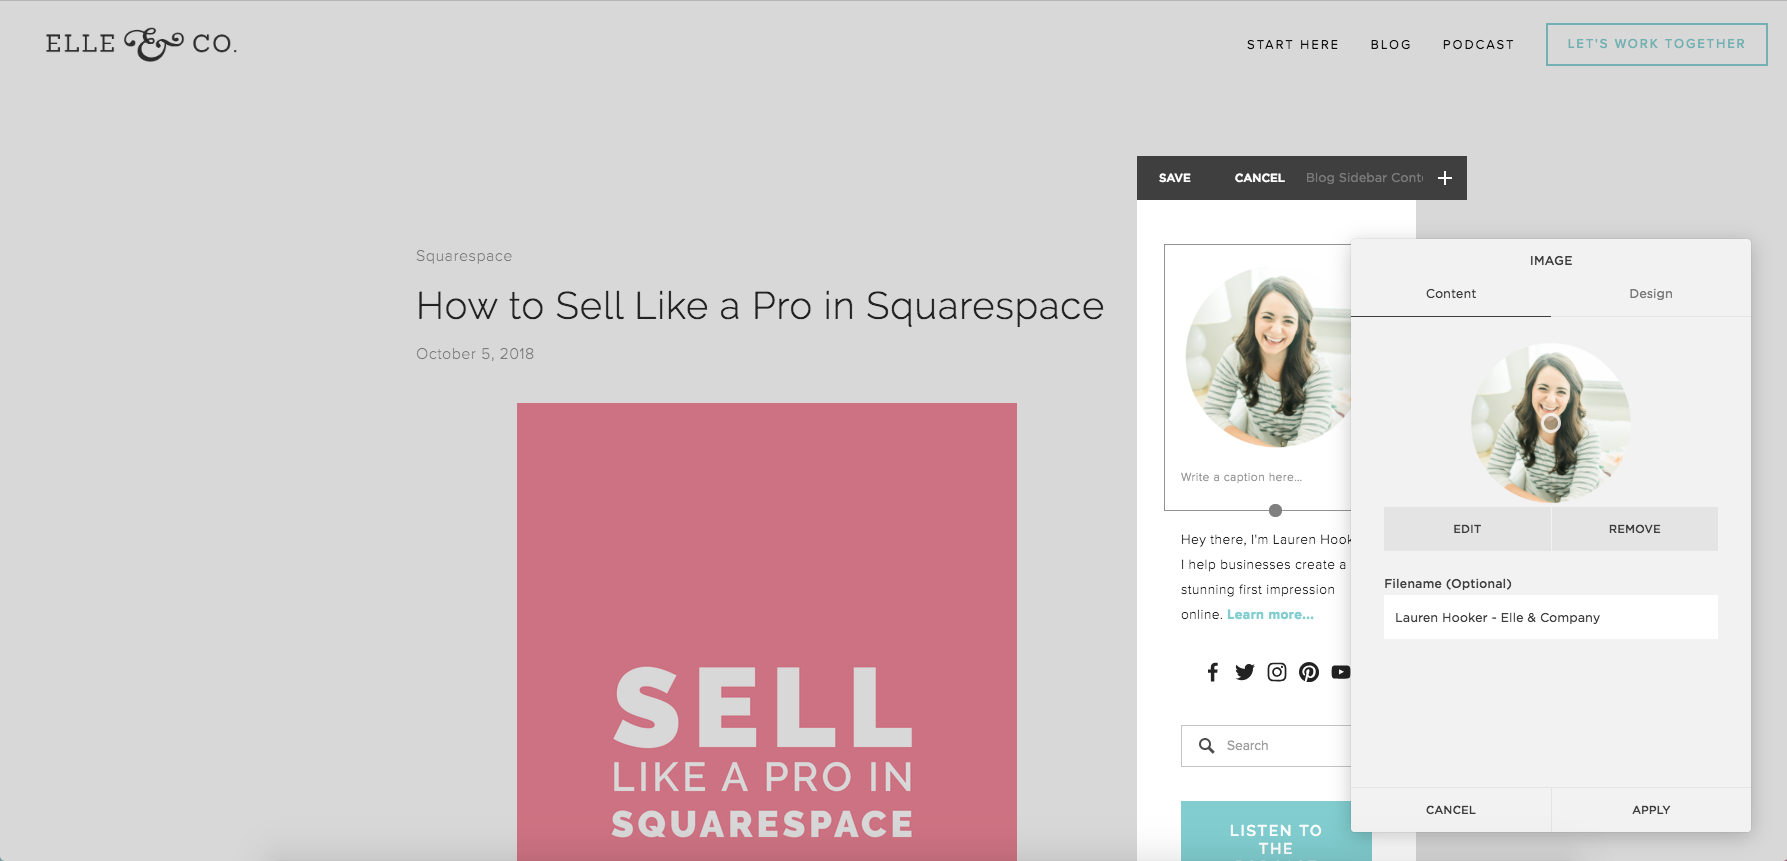 10 Things To Do After Your Squarespace Site is Live | Elle & Company